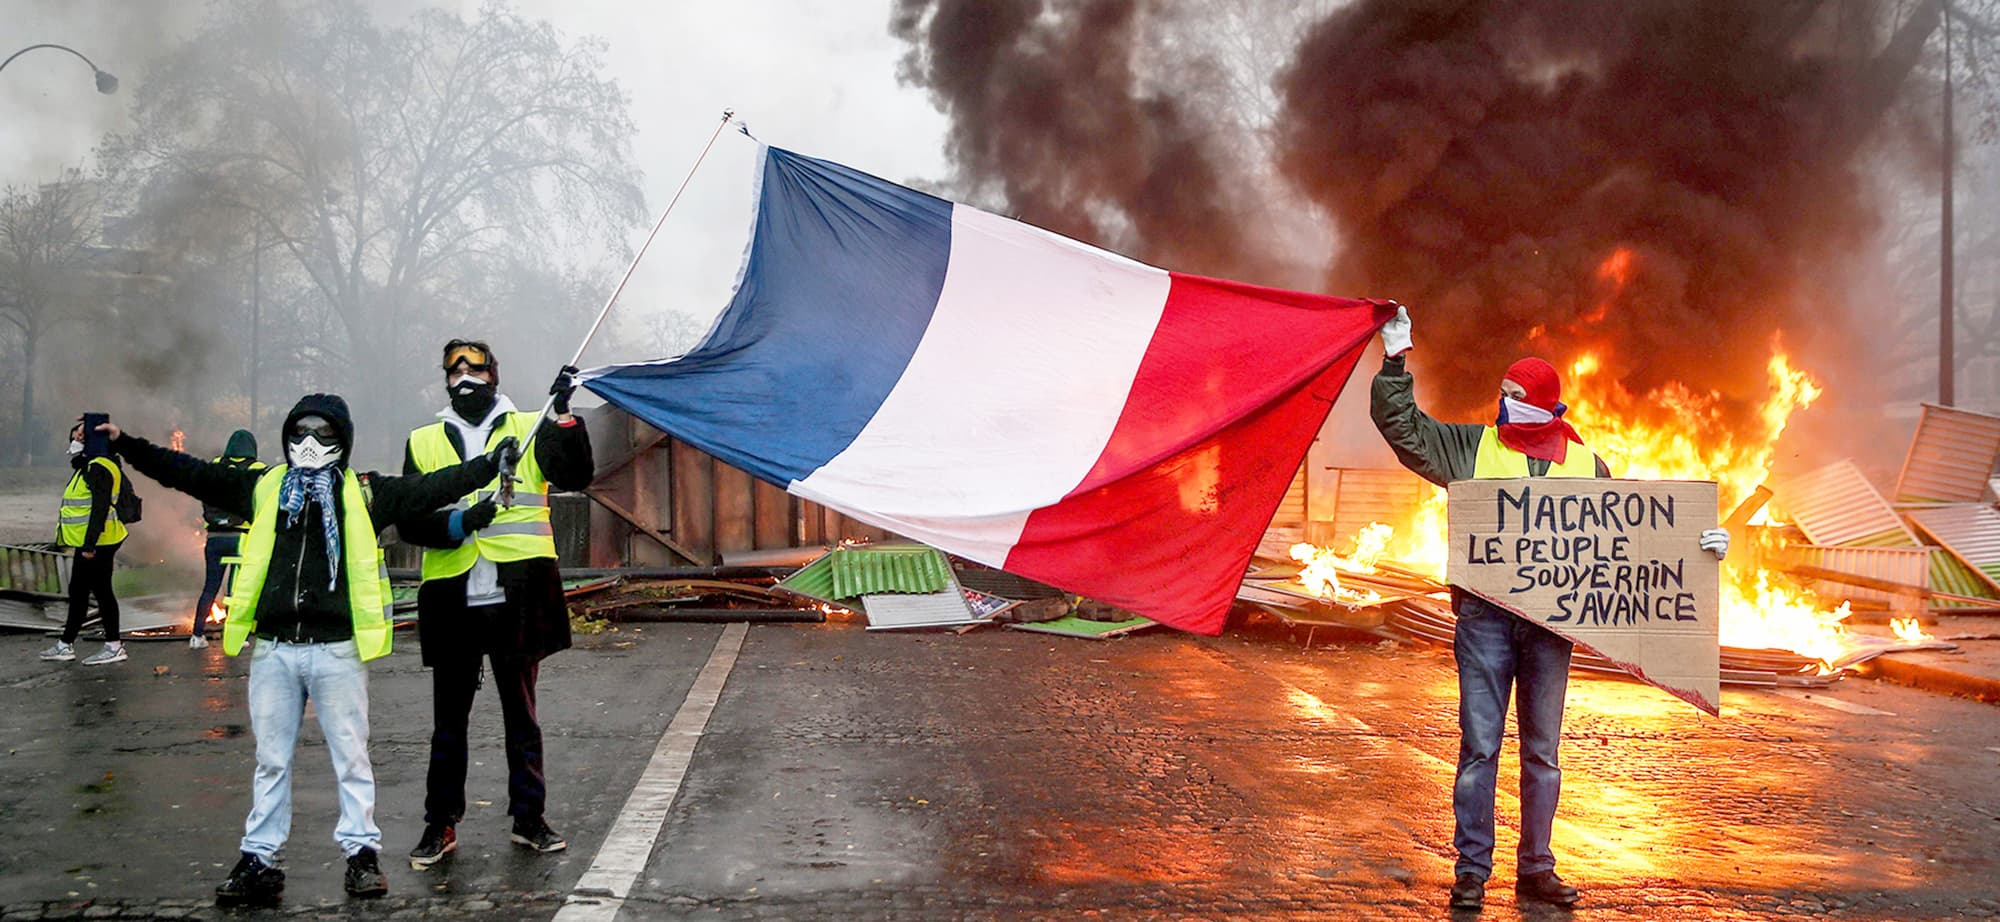 TOPSHOT - Protesters hold a French flag near a burning barricade during a protest of Yellow vests (Gilets jaunes) against rising oil prices and living costs, on December 1, 2018 in Paris. (Photo by Abdulmonam EASSA / AFP) — AFP or licensors